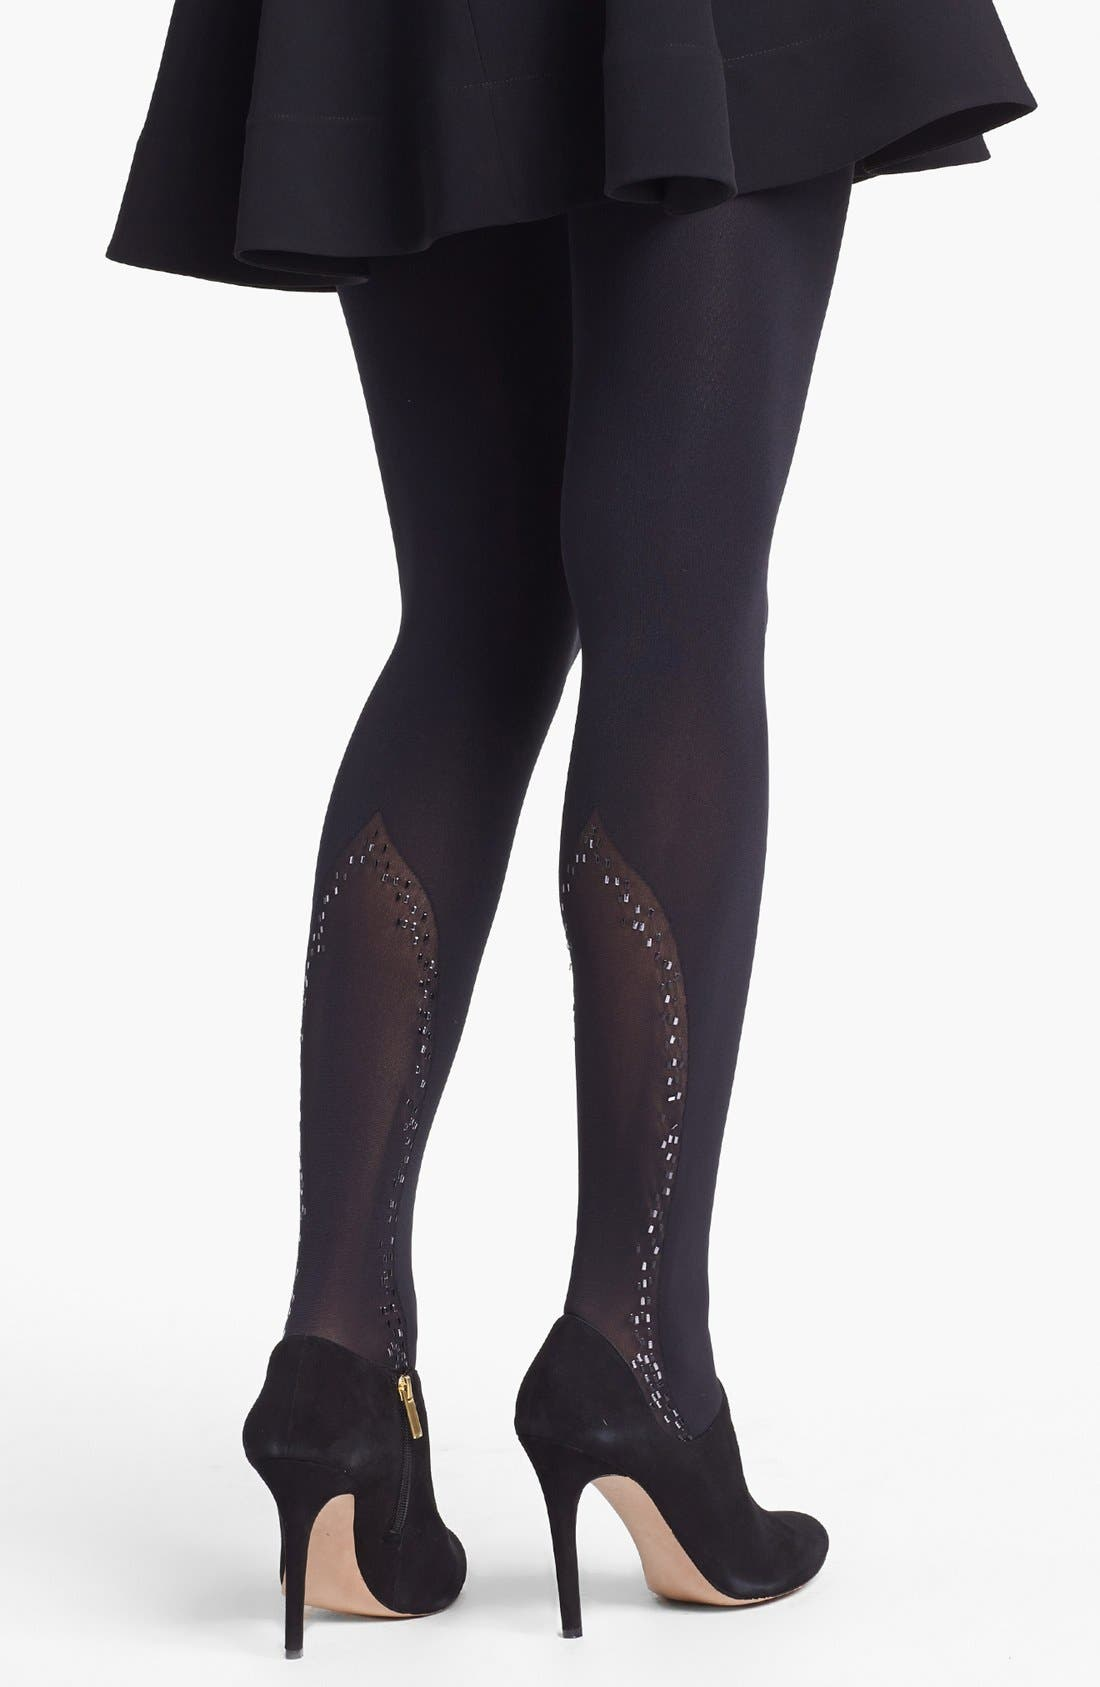 Main Image - Pretty Polly 'Touch' Embellished Tights